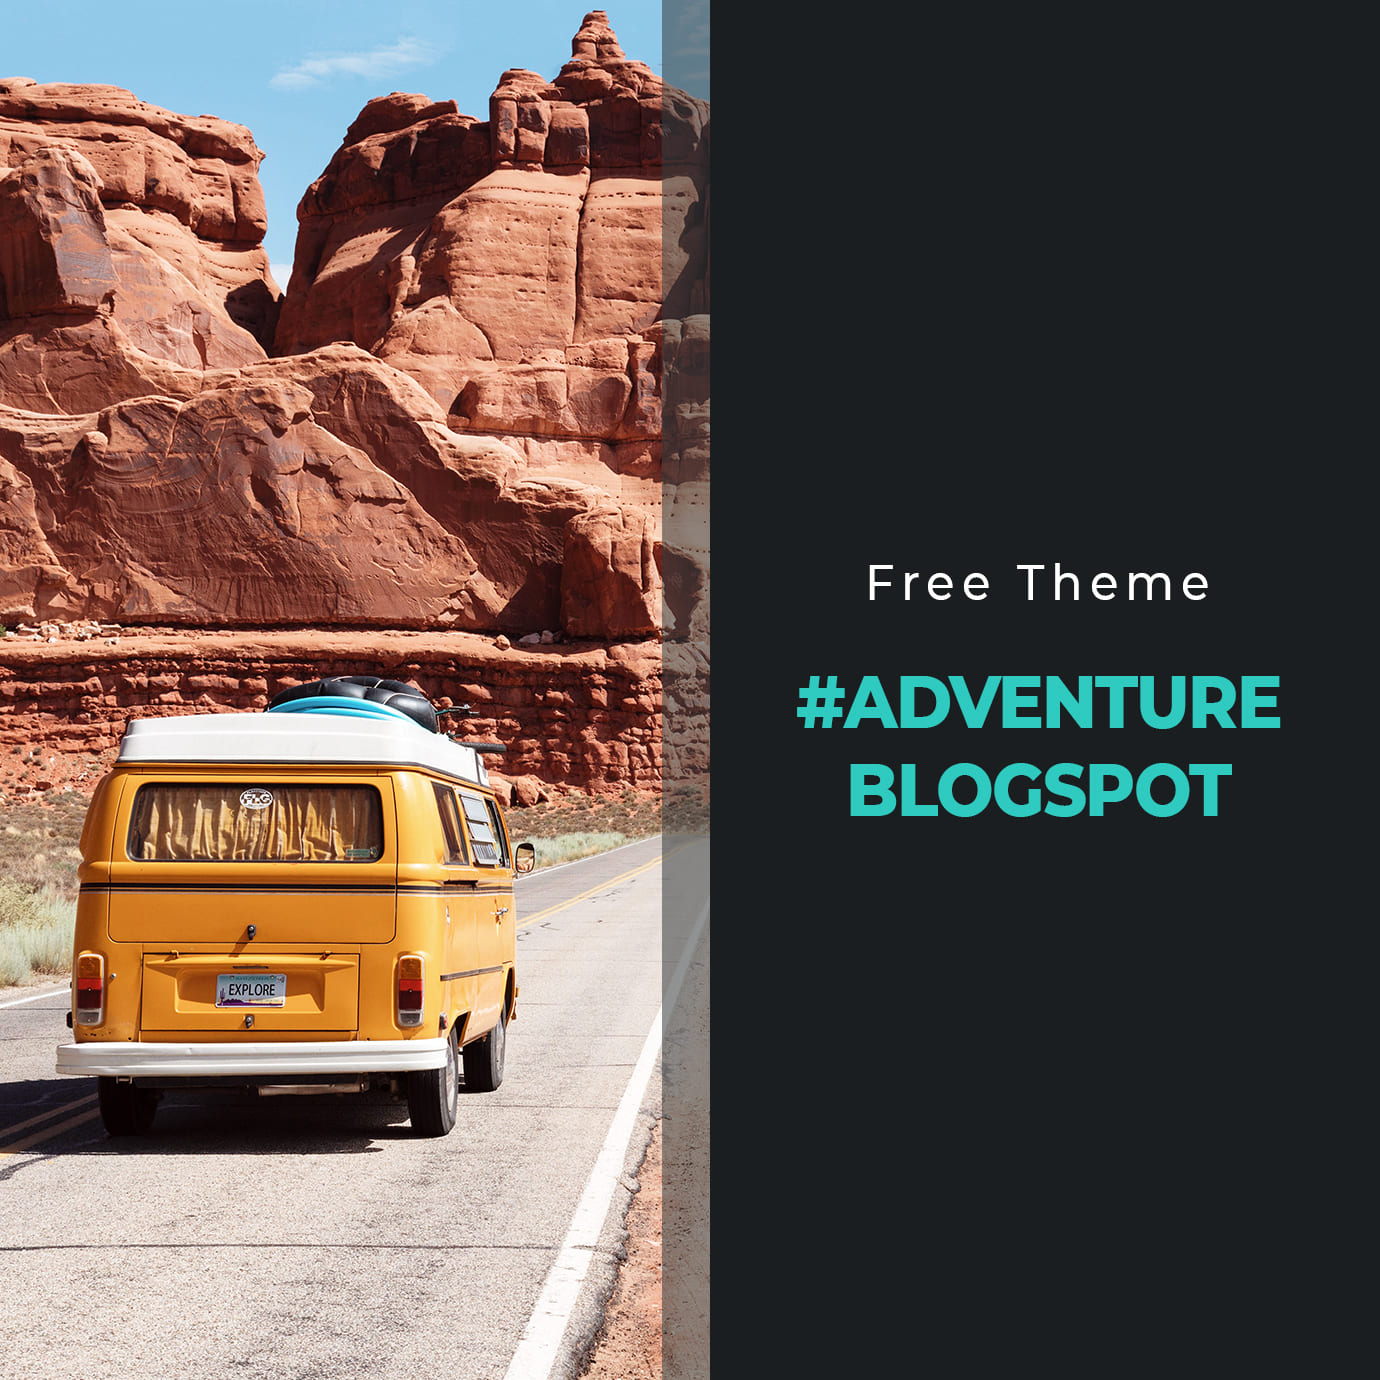 Free Travel BlogSpot Theme.